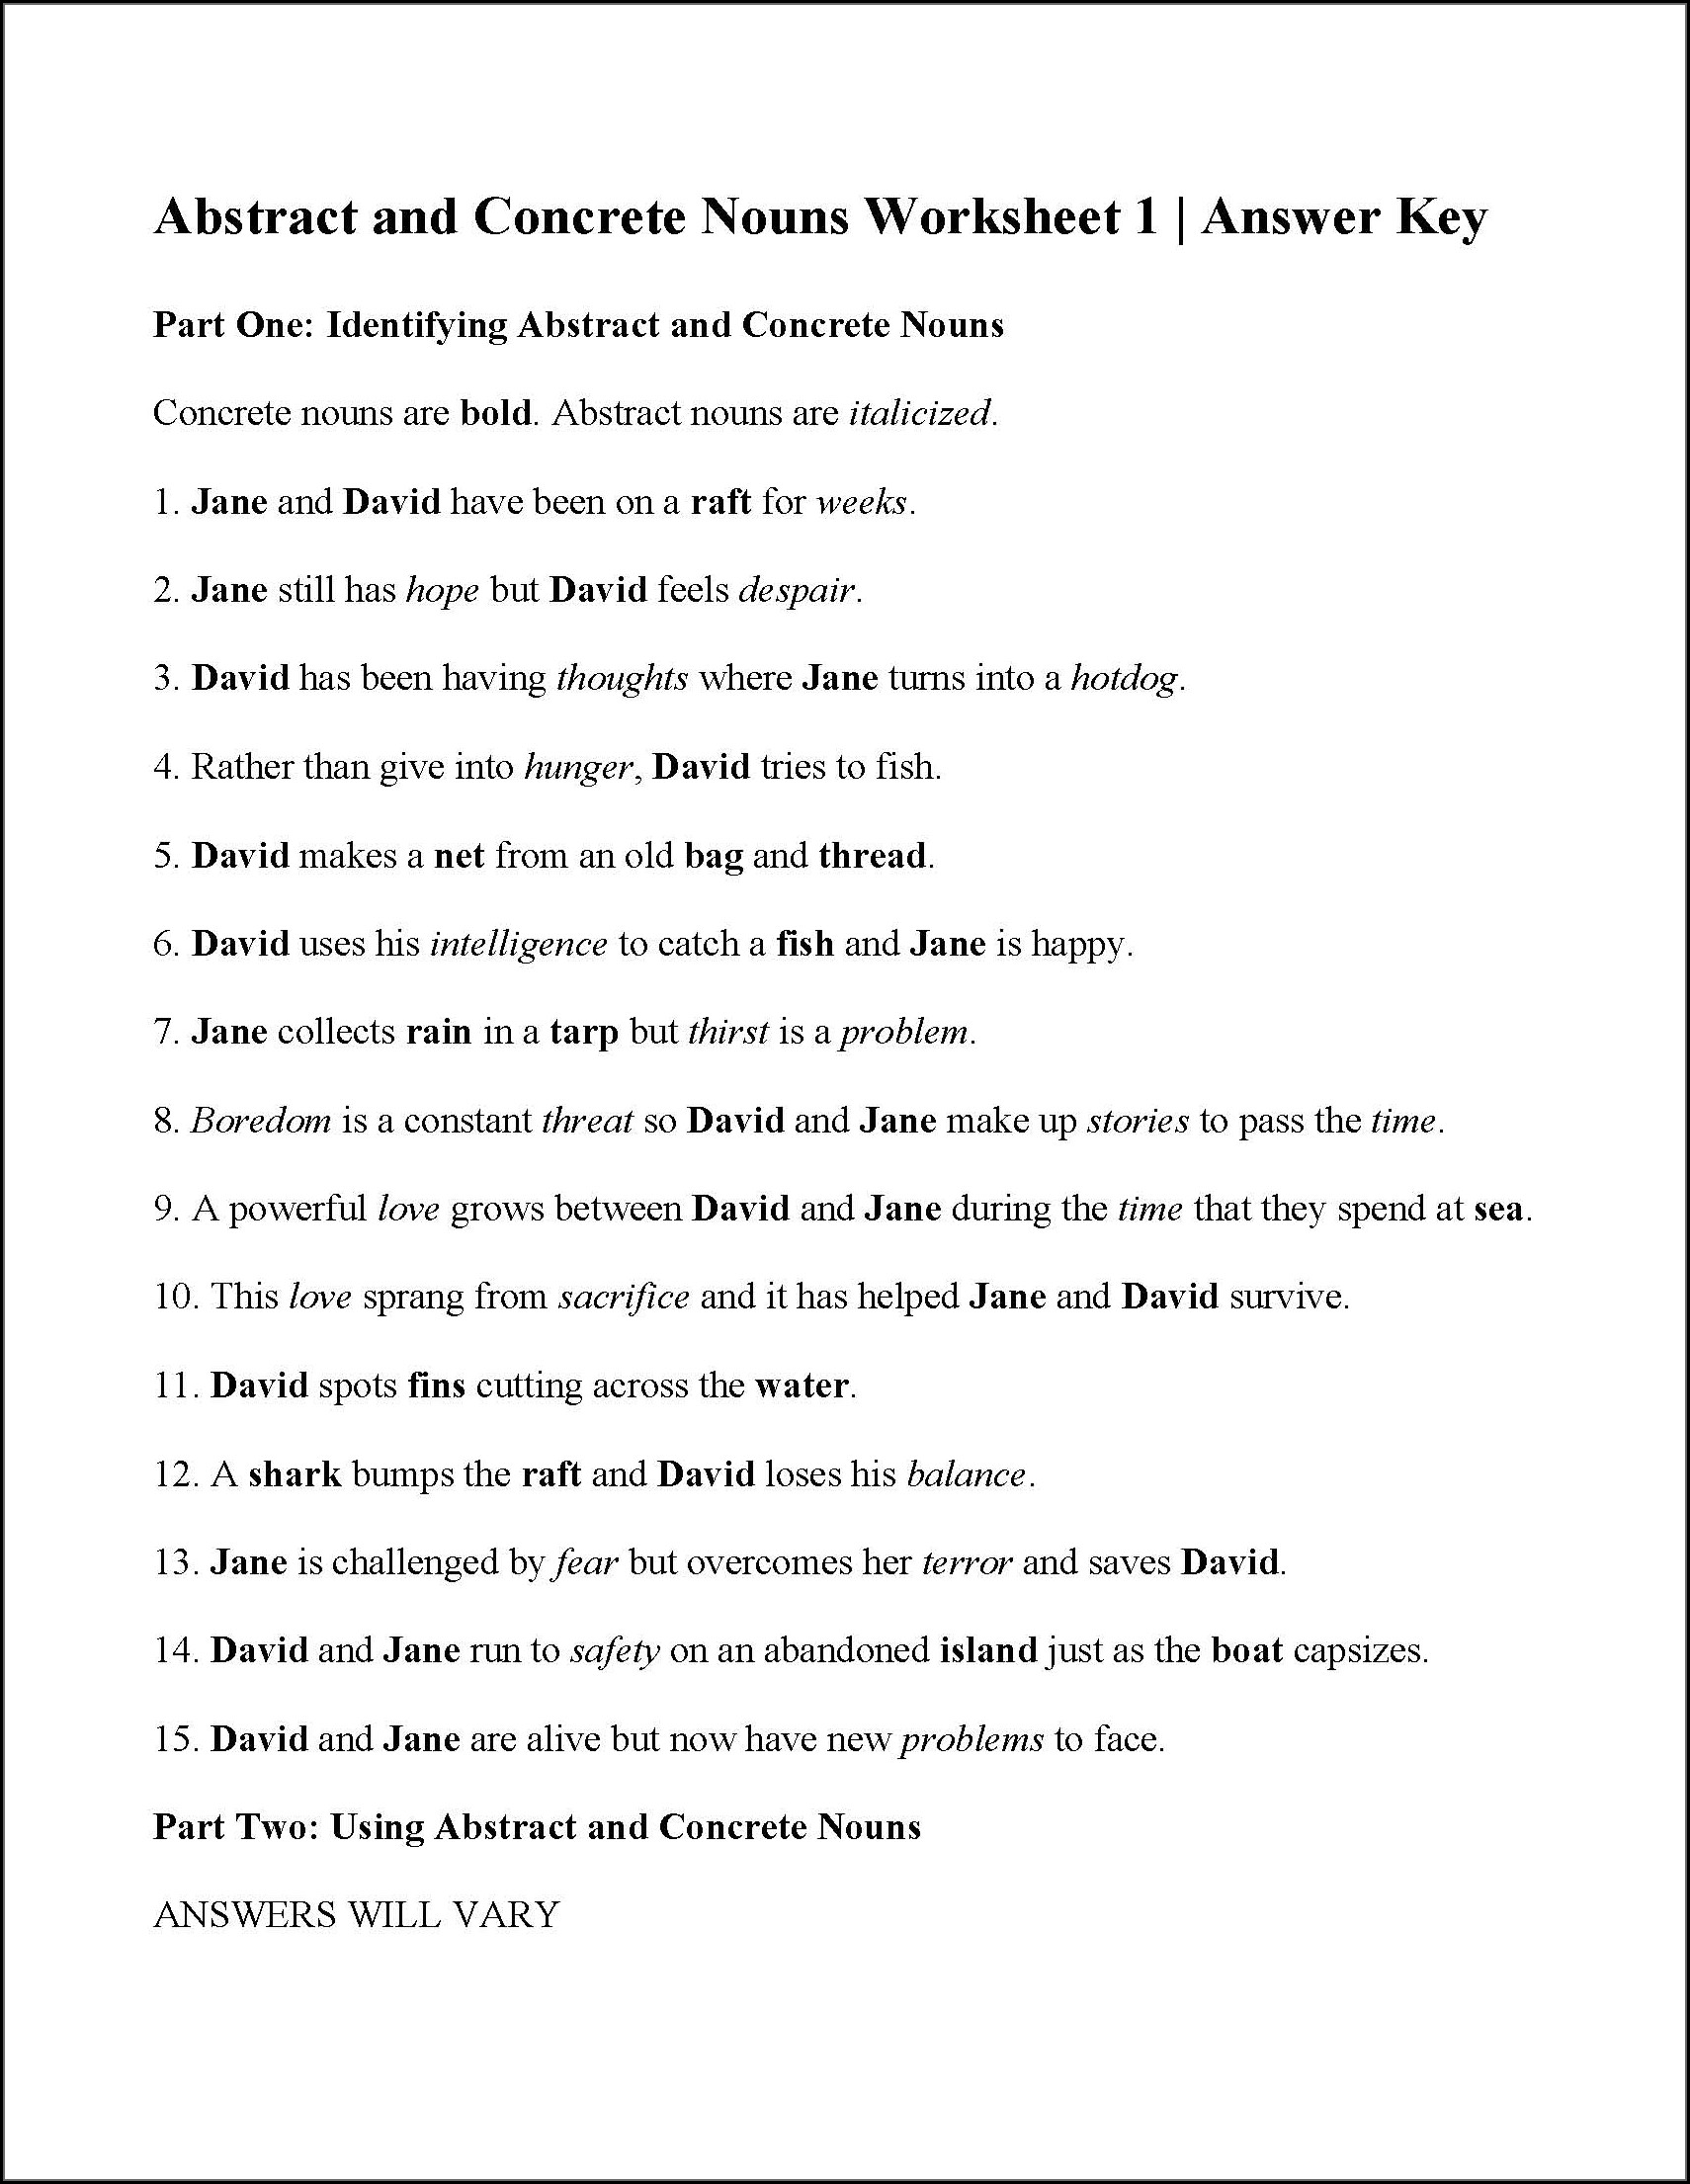 6th Grade Nouns Worksheets For Class 6 With Answers